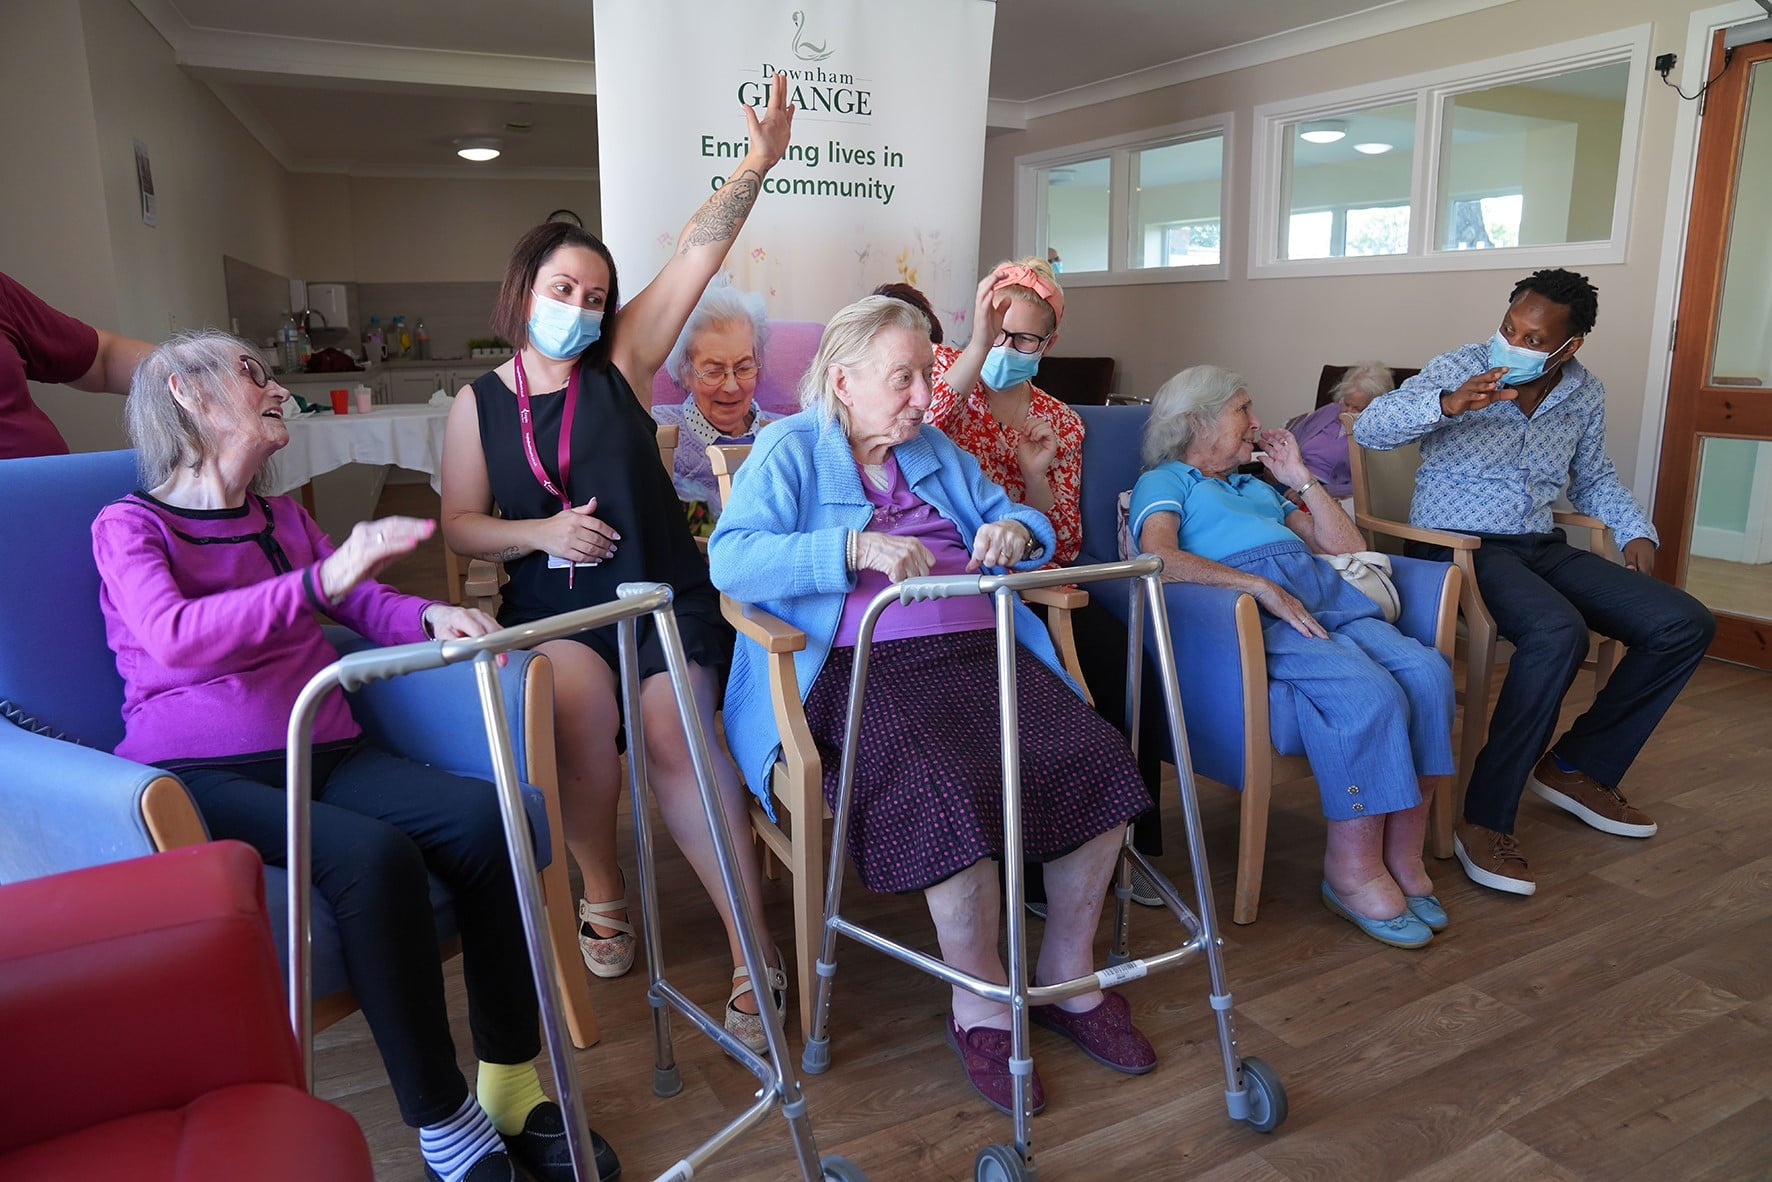 Downham Grange hosts exercise class using Zoom